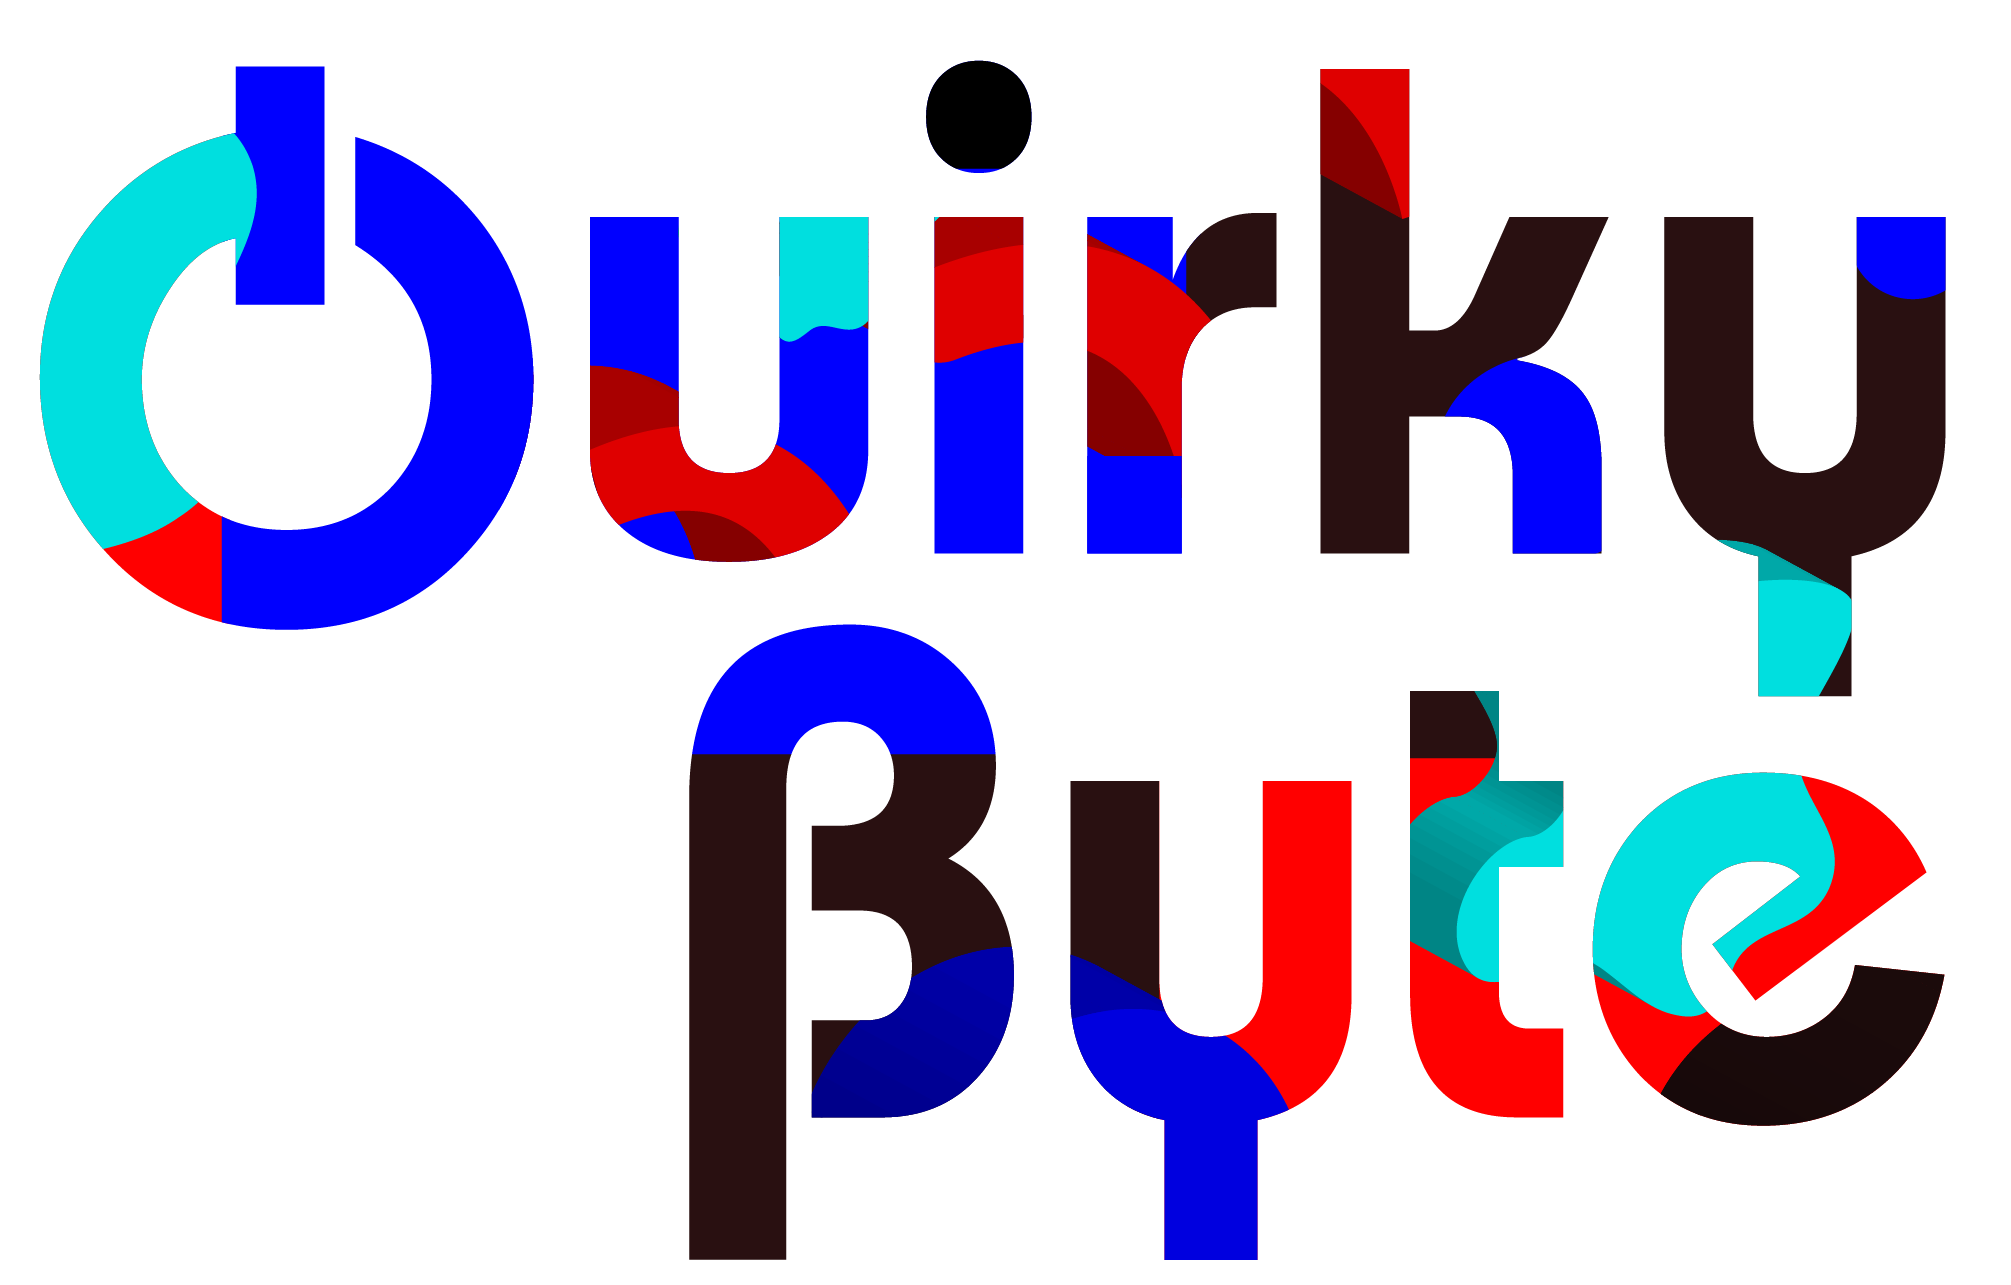 QuirkyByte